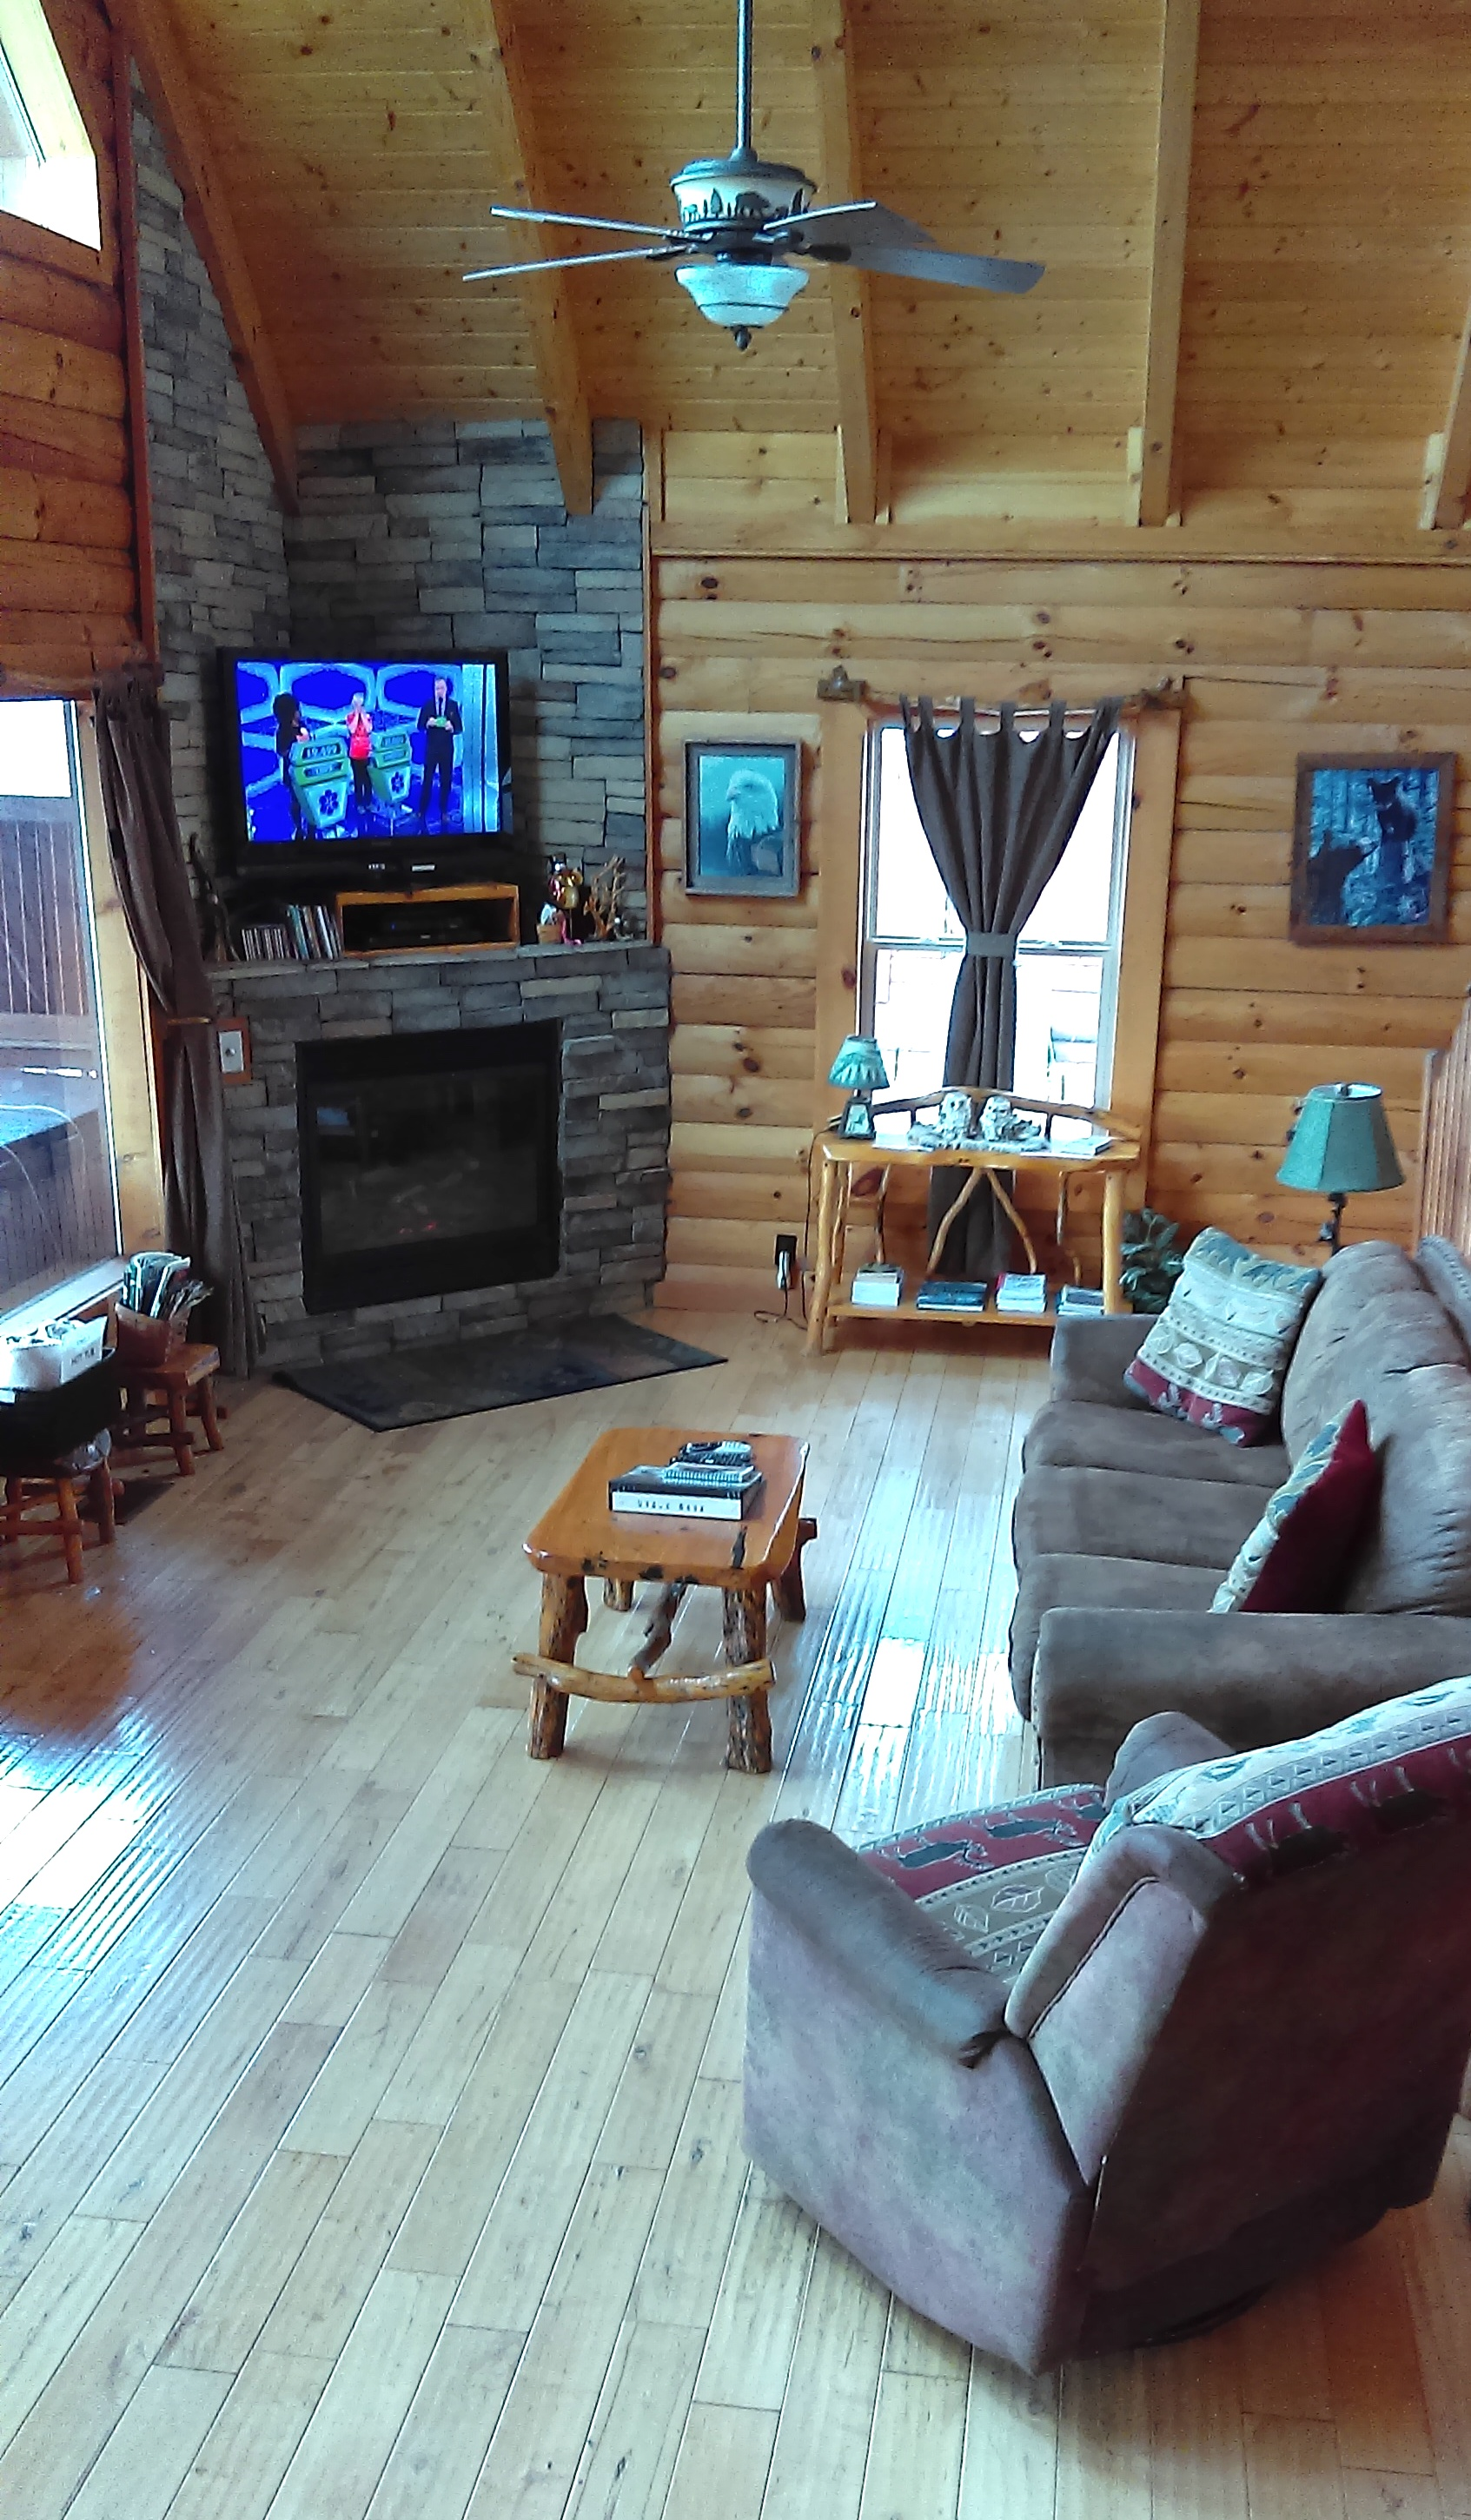 Eagles View - pet friendly accessible Cabin for Rent, Pigeon Forge